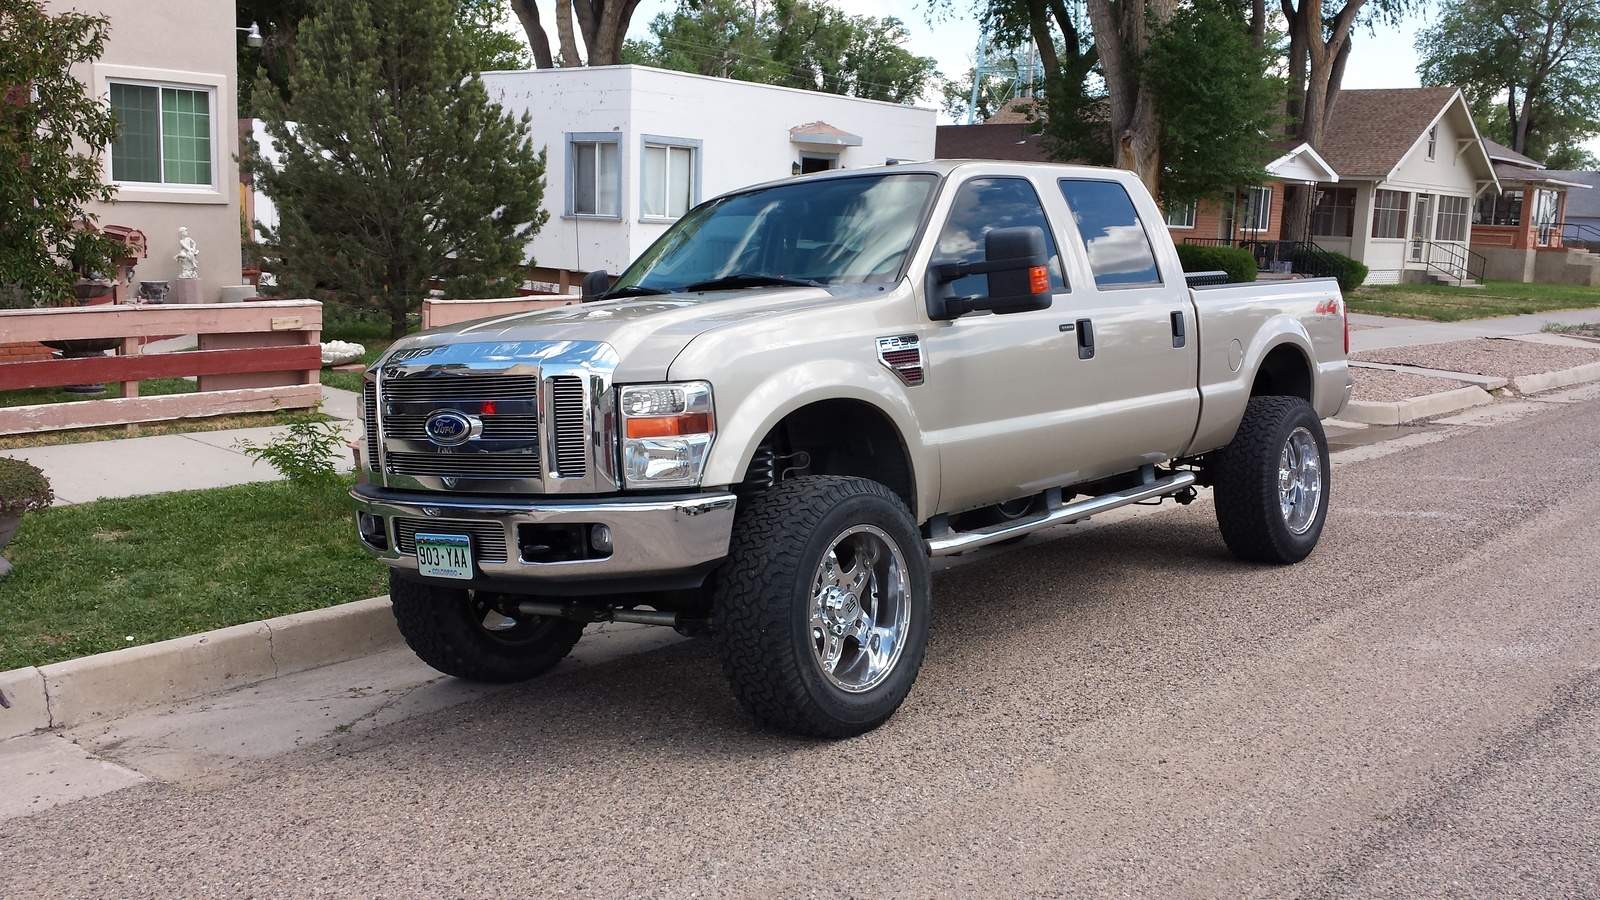 2010 Ford F-250 Super Duty - Pictures - CarGurus